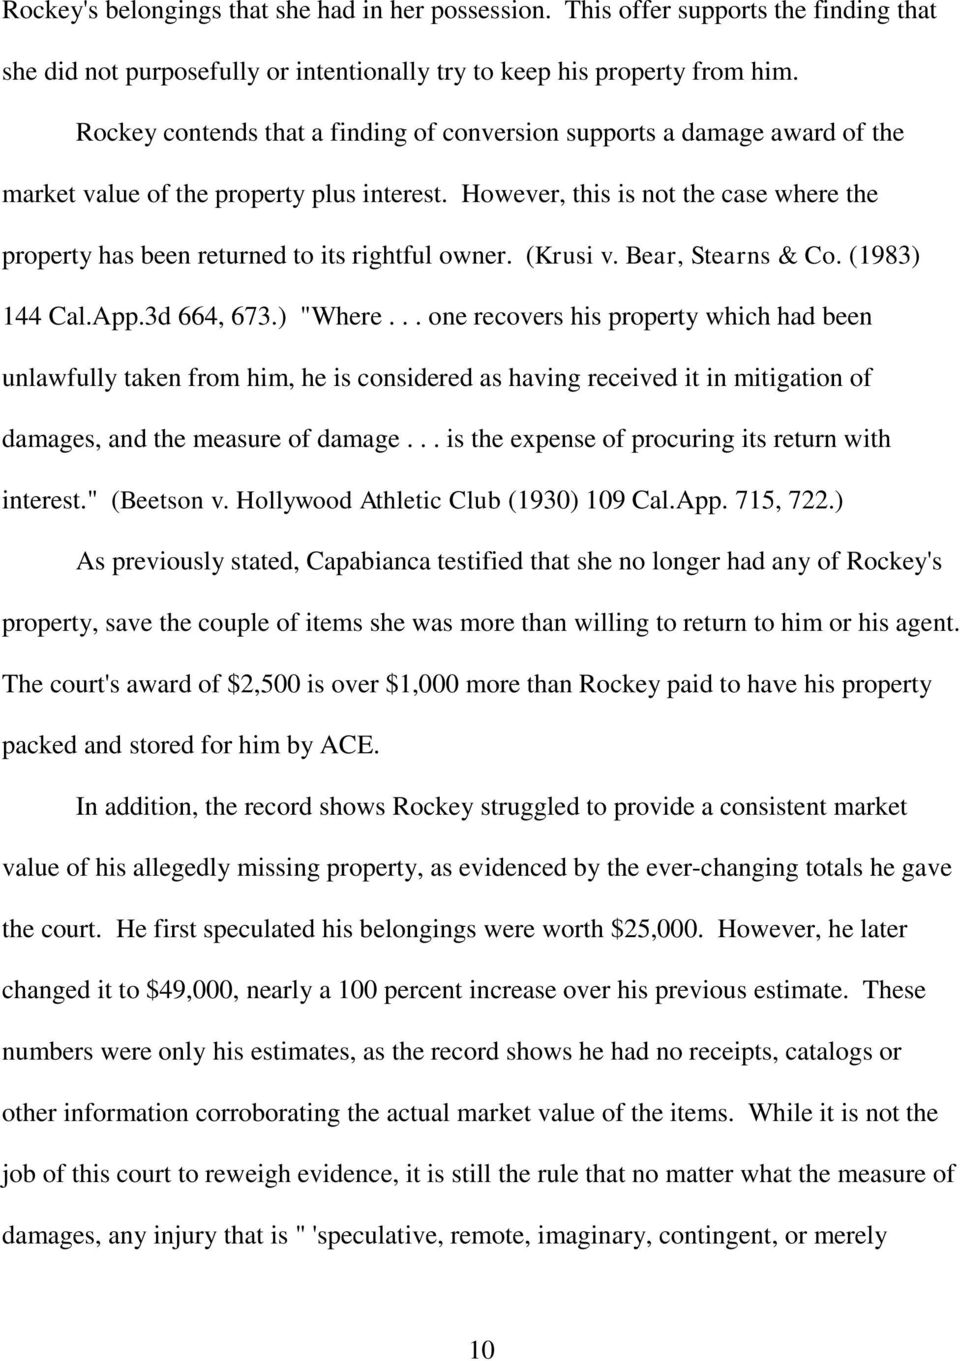 "However, this is not the case where the property has been returned to its rightful owner. (Krusi v. Bear, Stearns & Co. (1983) 144 Cal.App.3d 664, 673.) ""Where."